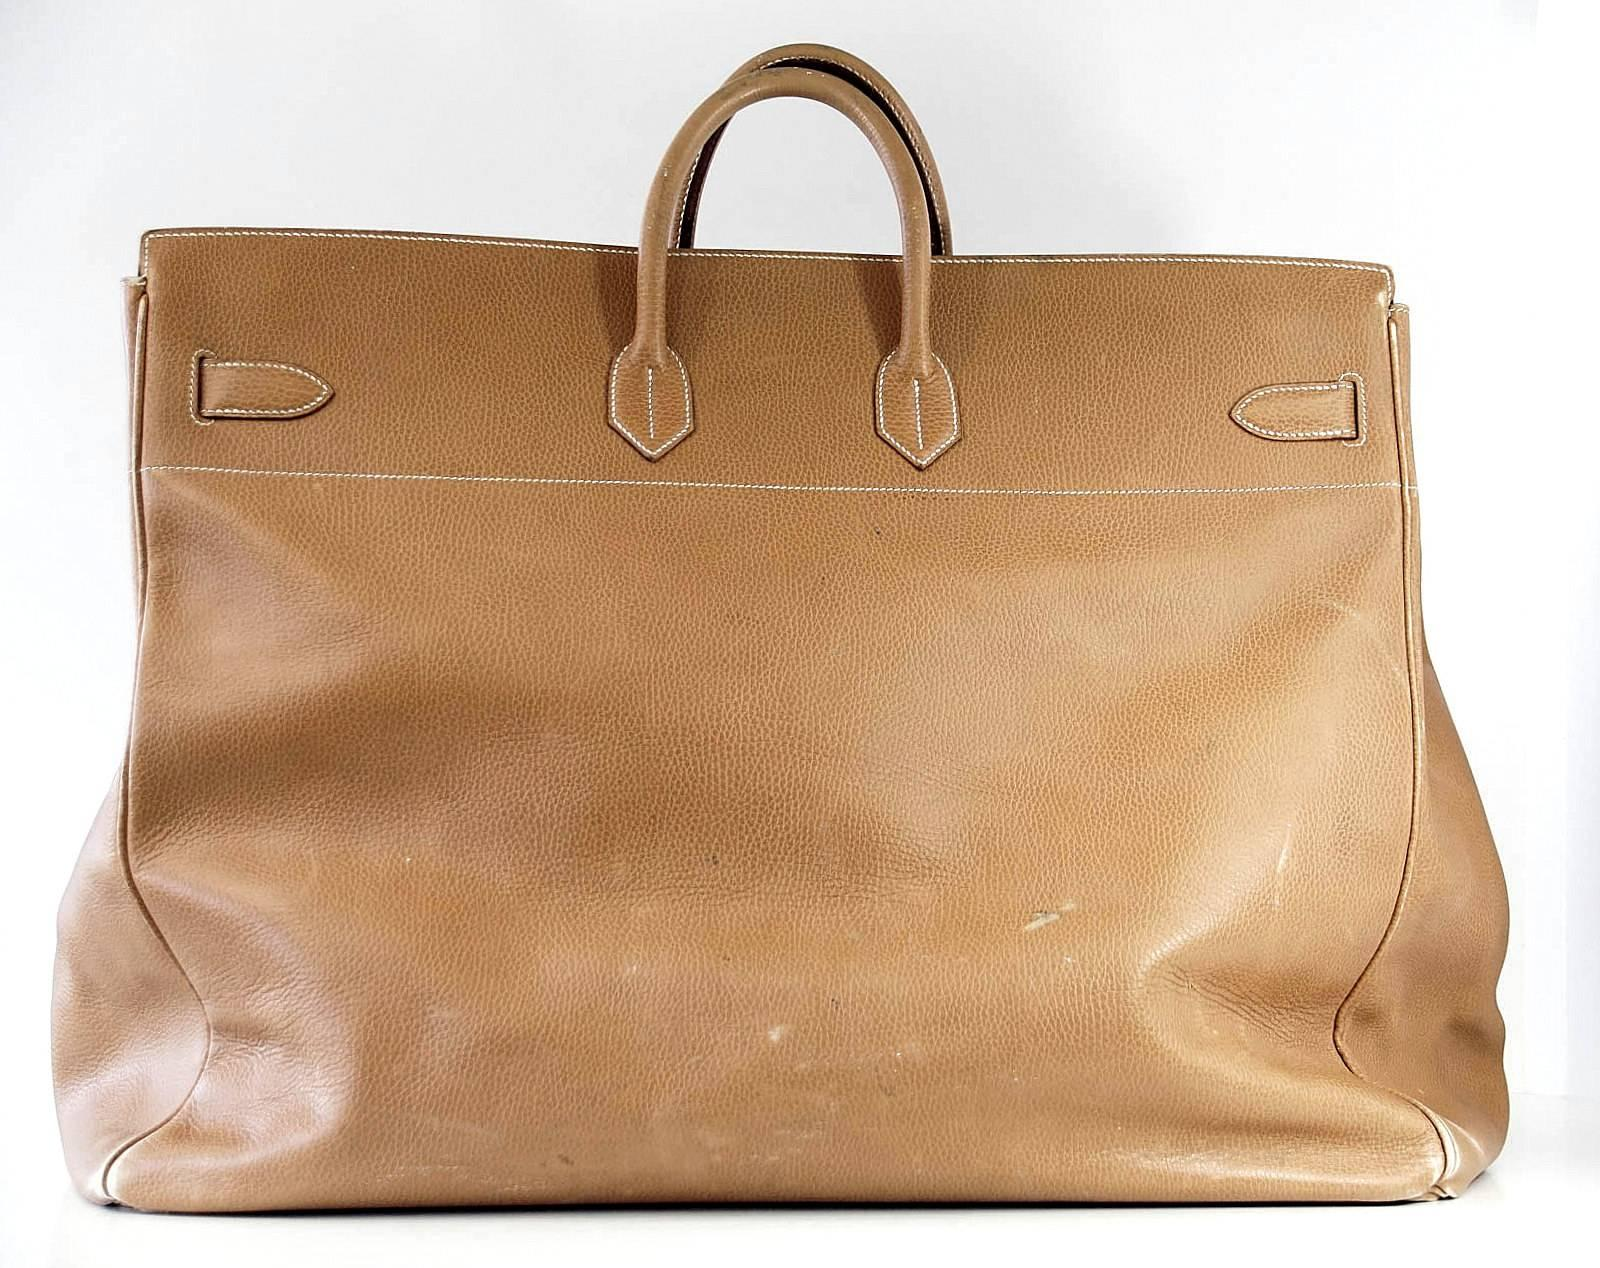 Hermes Birkin Bag 60 Vintage Celebrity Owned Hac Gold Ardennes Brass at  1stdibs c1ff938cce426